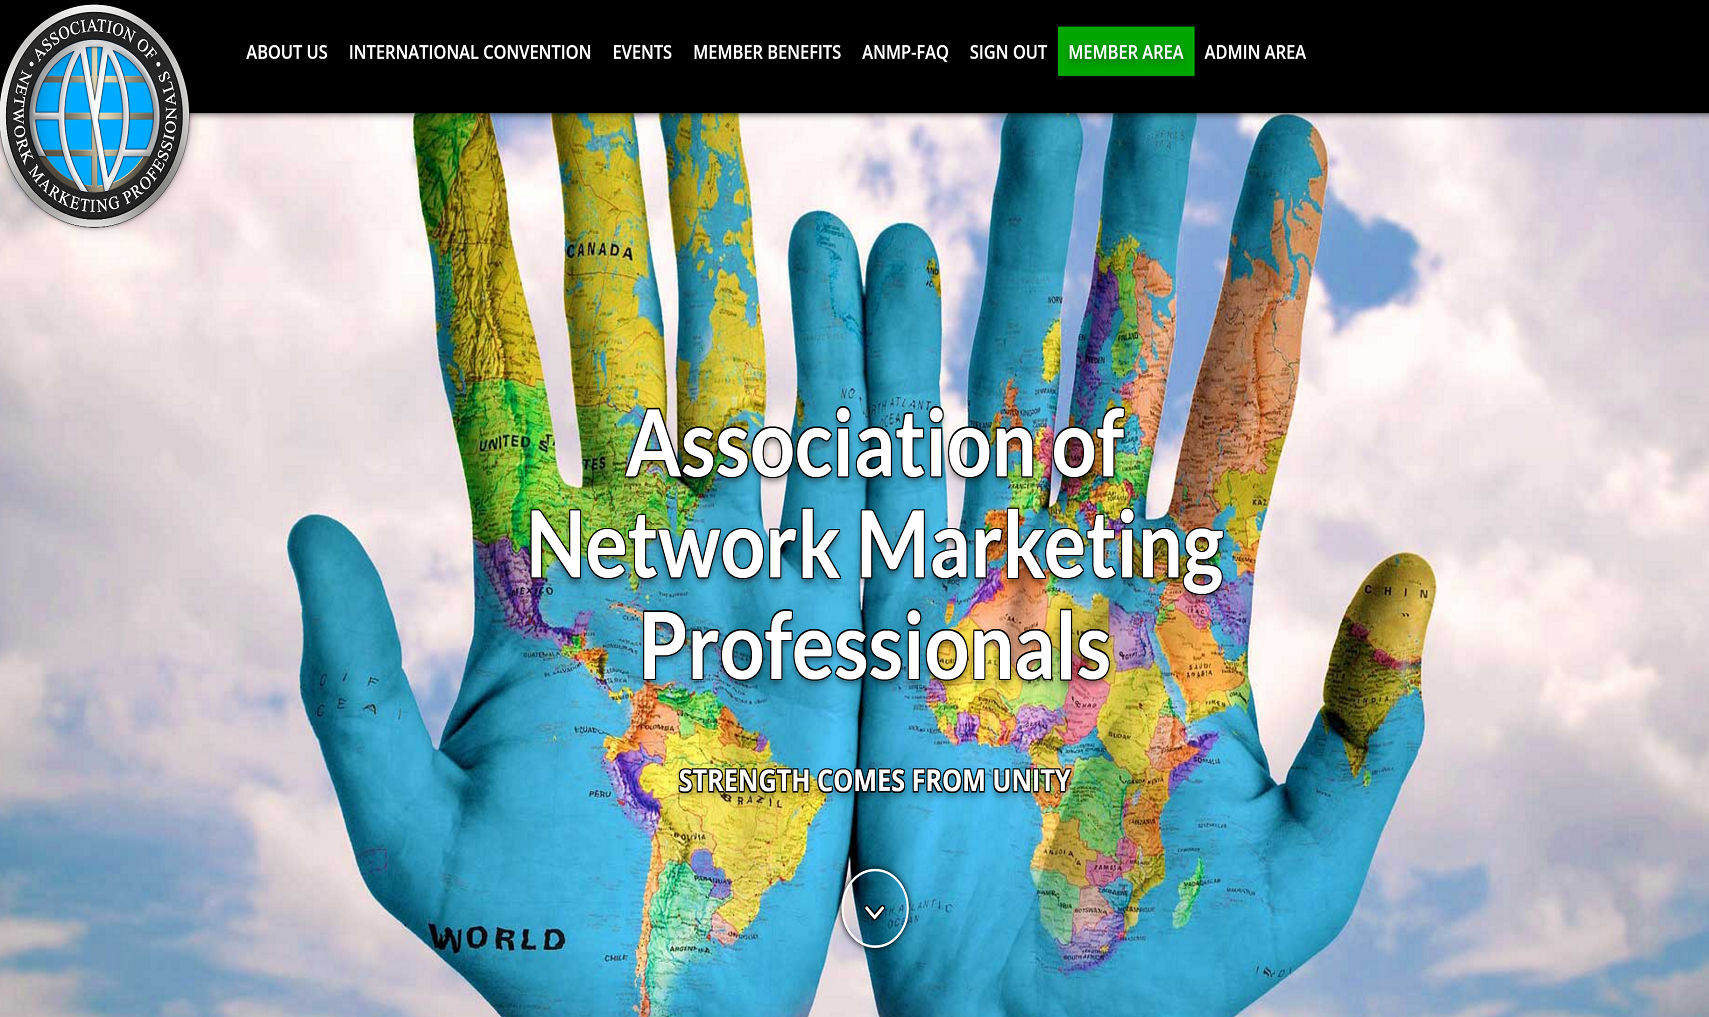 website design, branding and SEO for network marketing organization